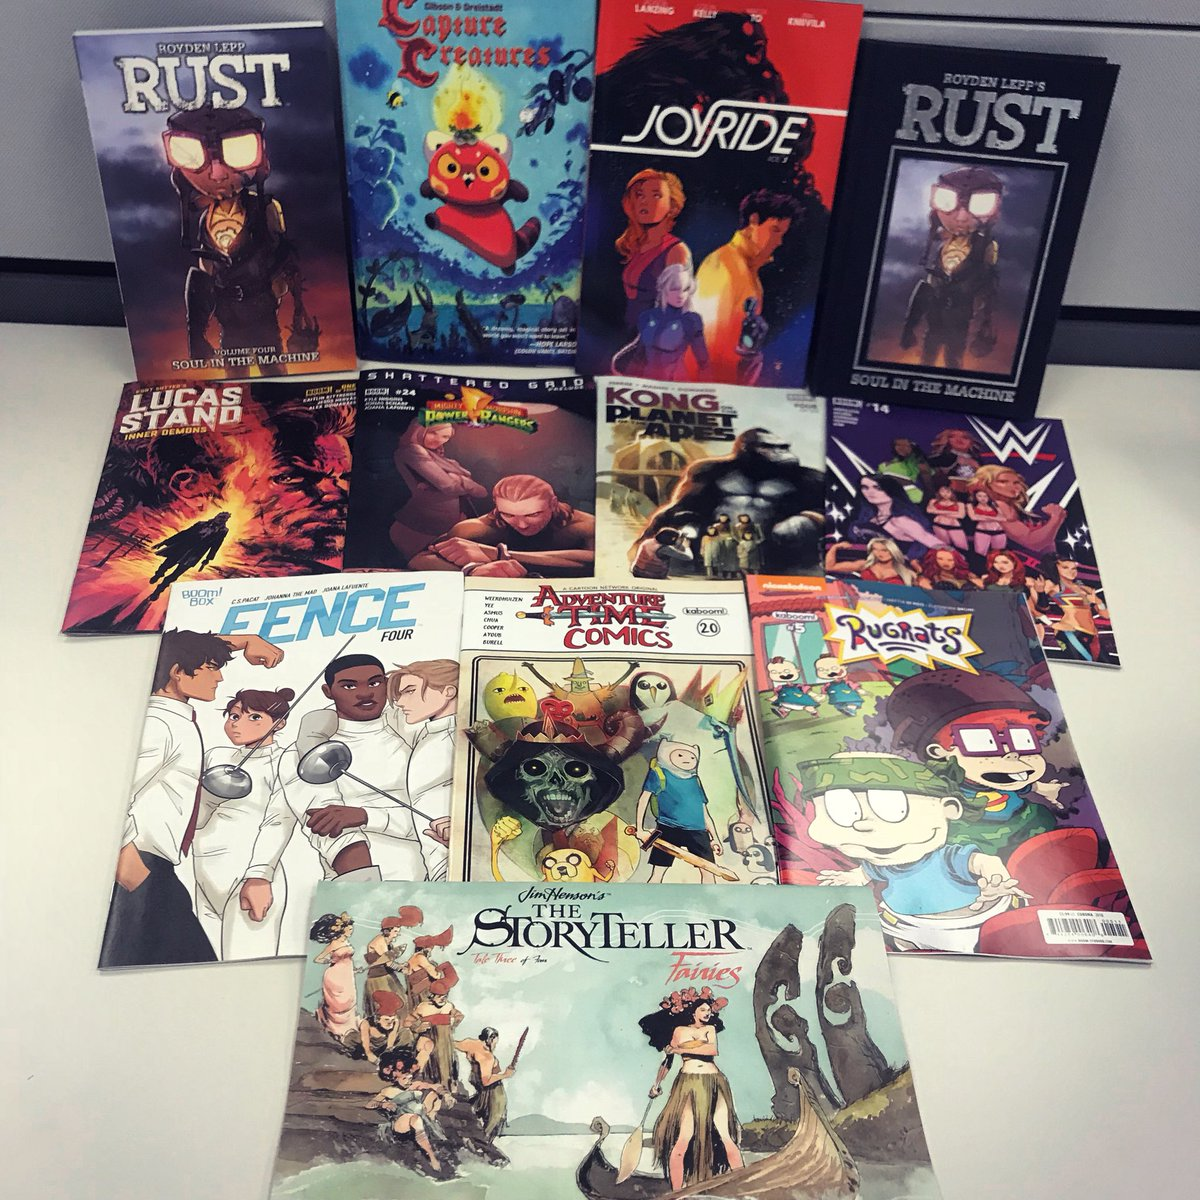 Happy #NCBD everyone! What's on your pull list this week?